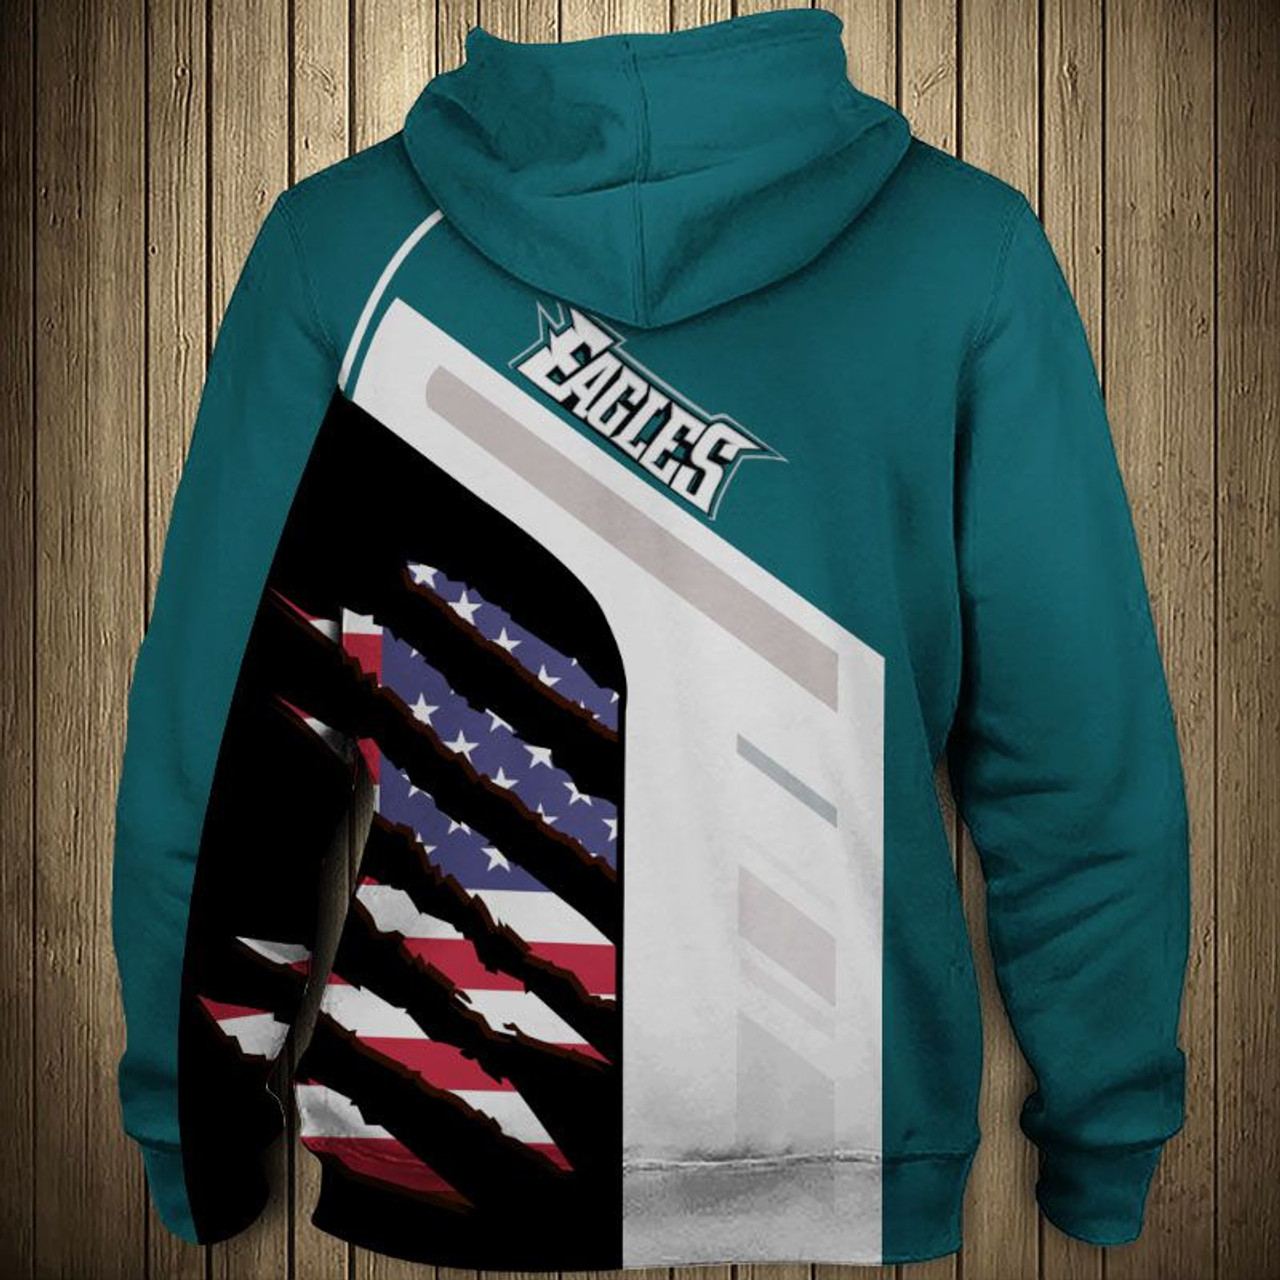 **(OFFICIAL-N.F.L.PHILADELPHIA-EAGLES-TRENDY-PULLOVER-TEAM-HOODIES/CUSTOM-3D-GRAPHIC-PRINTED-DETAILED-DOUBLE-SIDED-ALL-OVER/CLASSIC-OFFICIAL-EAGLES-LOGOS & EAGLES-OFFICIAL-TEAM-COLORS/WARM-PREMIUM-OFFICIAL-N.F.L.EAGLES-TEAM-PULLOVER-POCKET-HOODIES)**